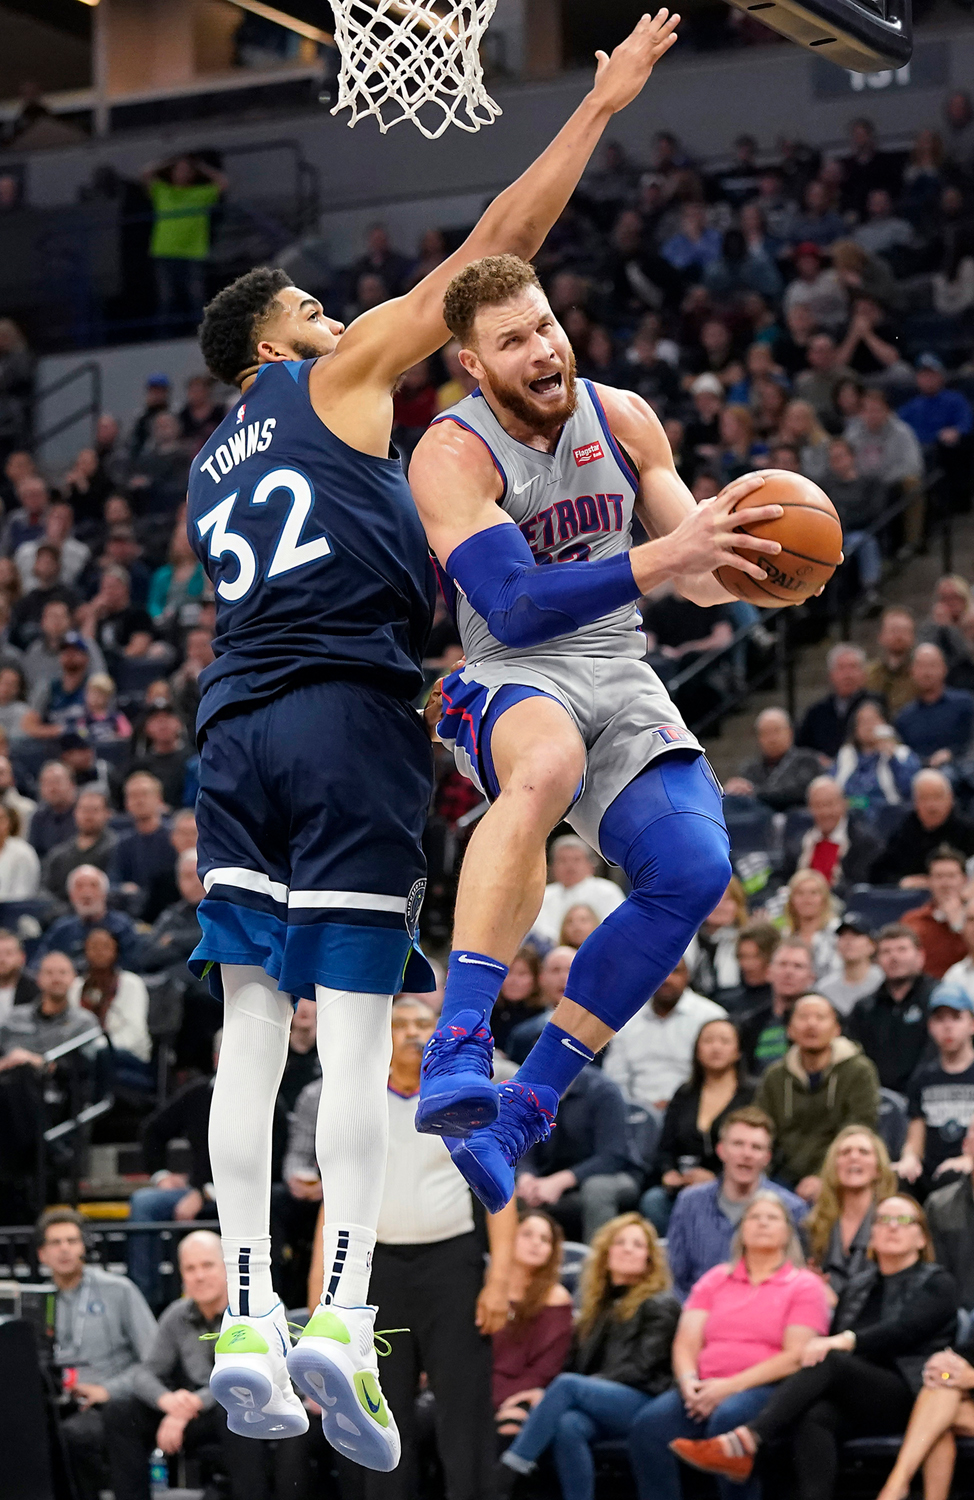 The Detroit Pistons' Blake Griffin shoots as the Minnesota Timberwolves' Karl-Anthony Towns (32) defends during the second half at Target Center in Minneapolis on Wednesday, Dec. 19, 2018. The Pistons won, 129-123, in overtime.